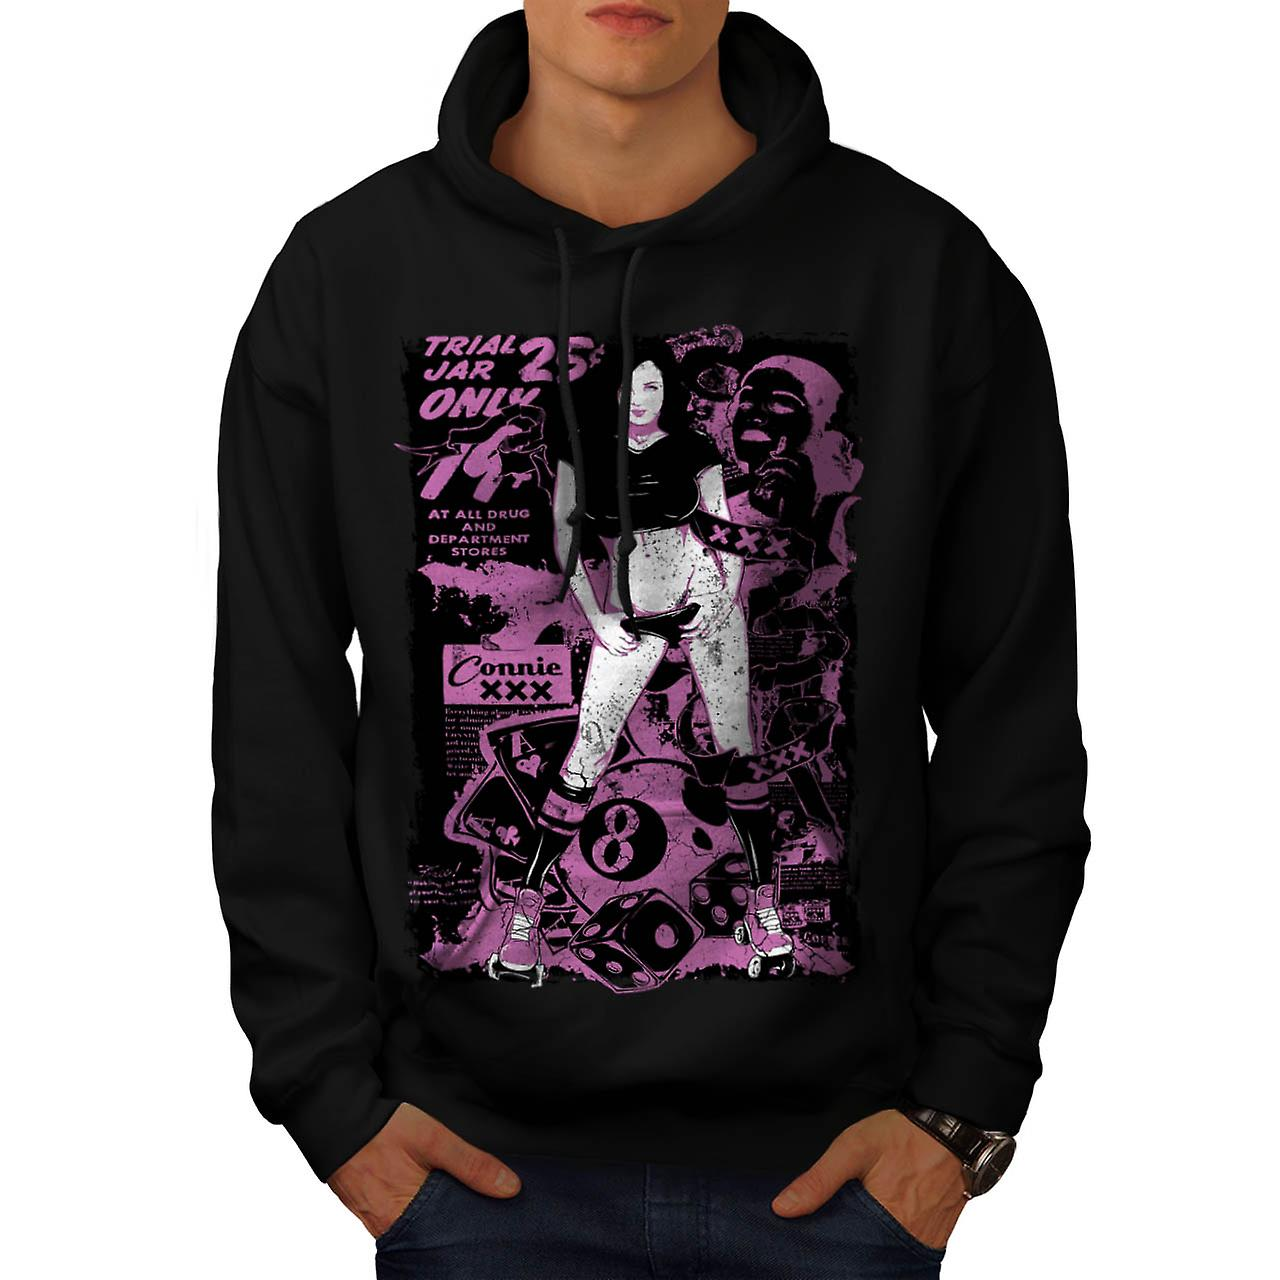 Girl Hot Trial Jar Sexy Men Black Hoodie | Wellcoda